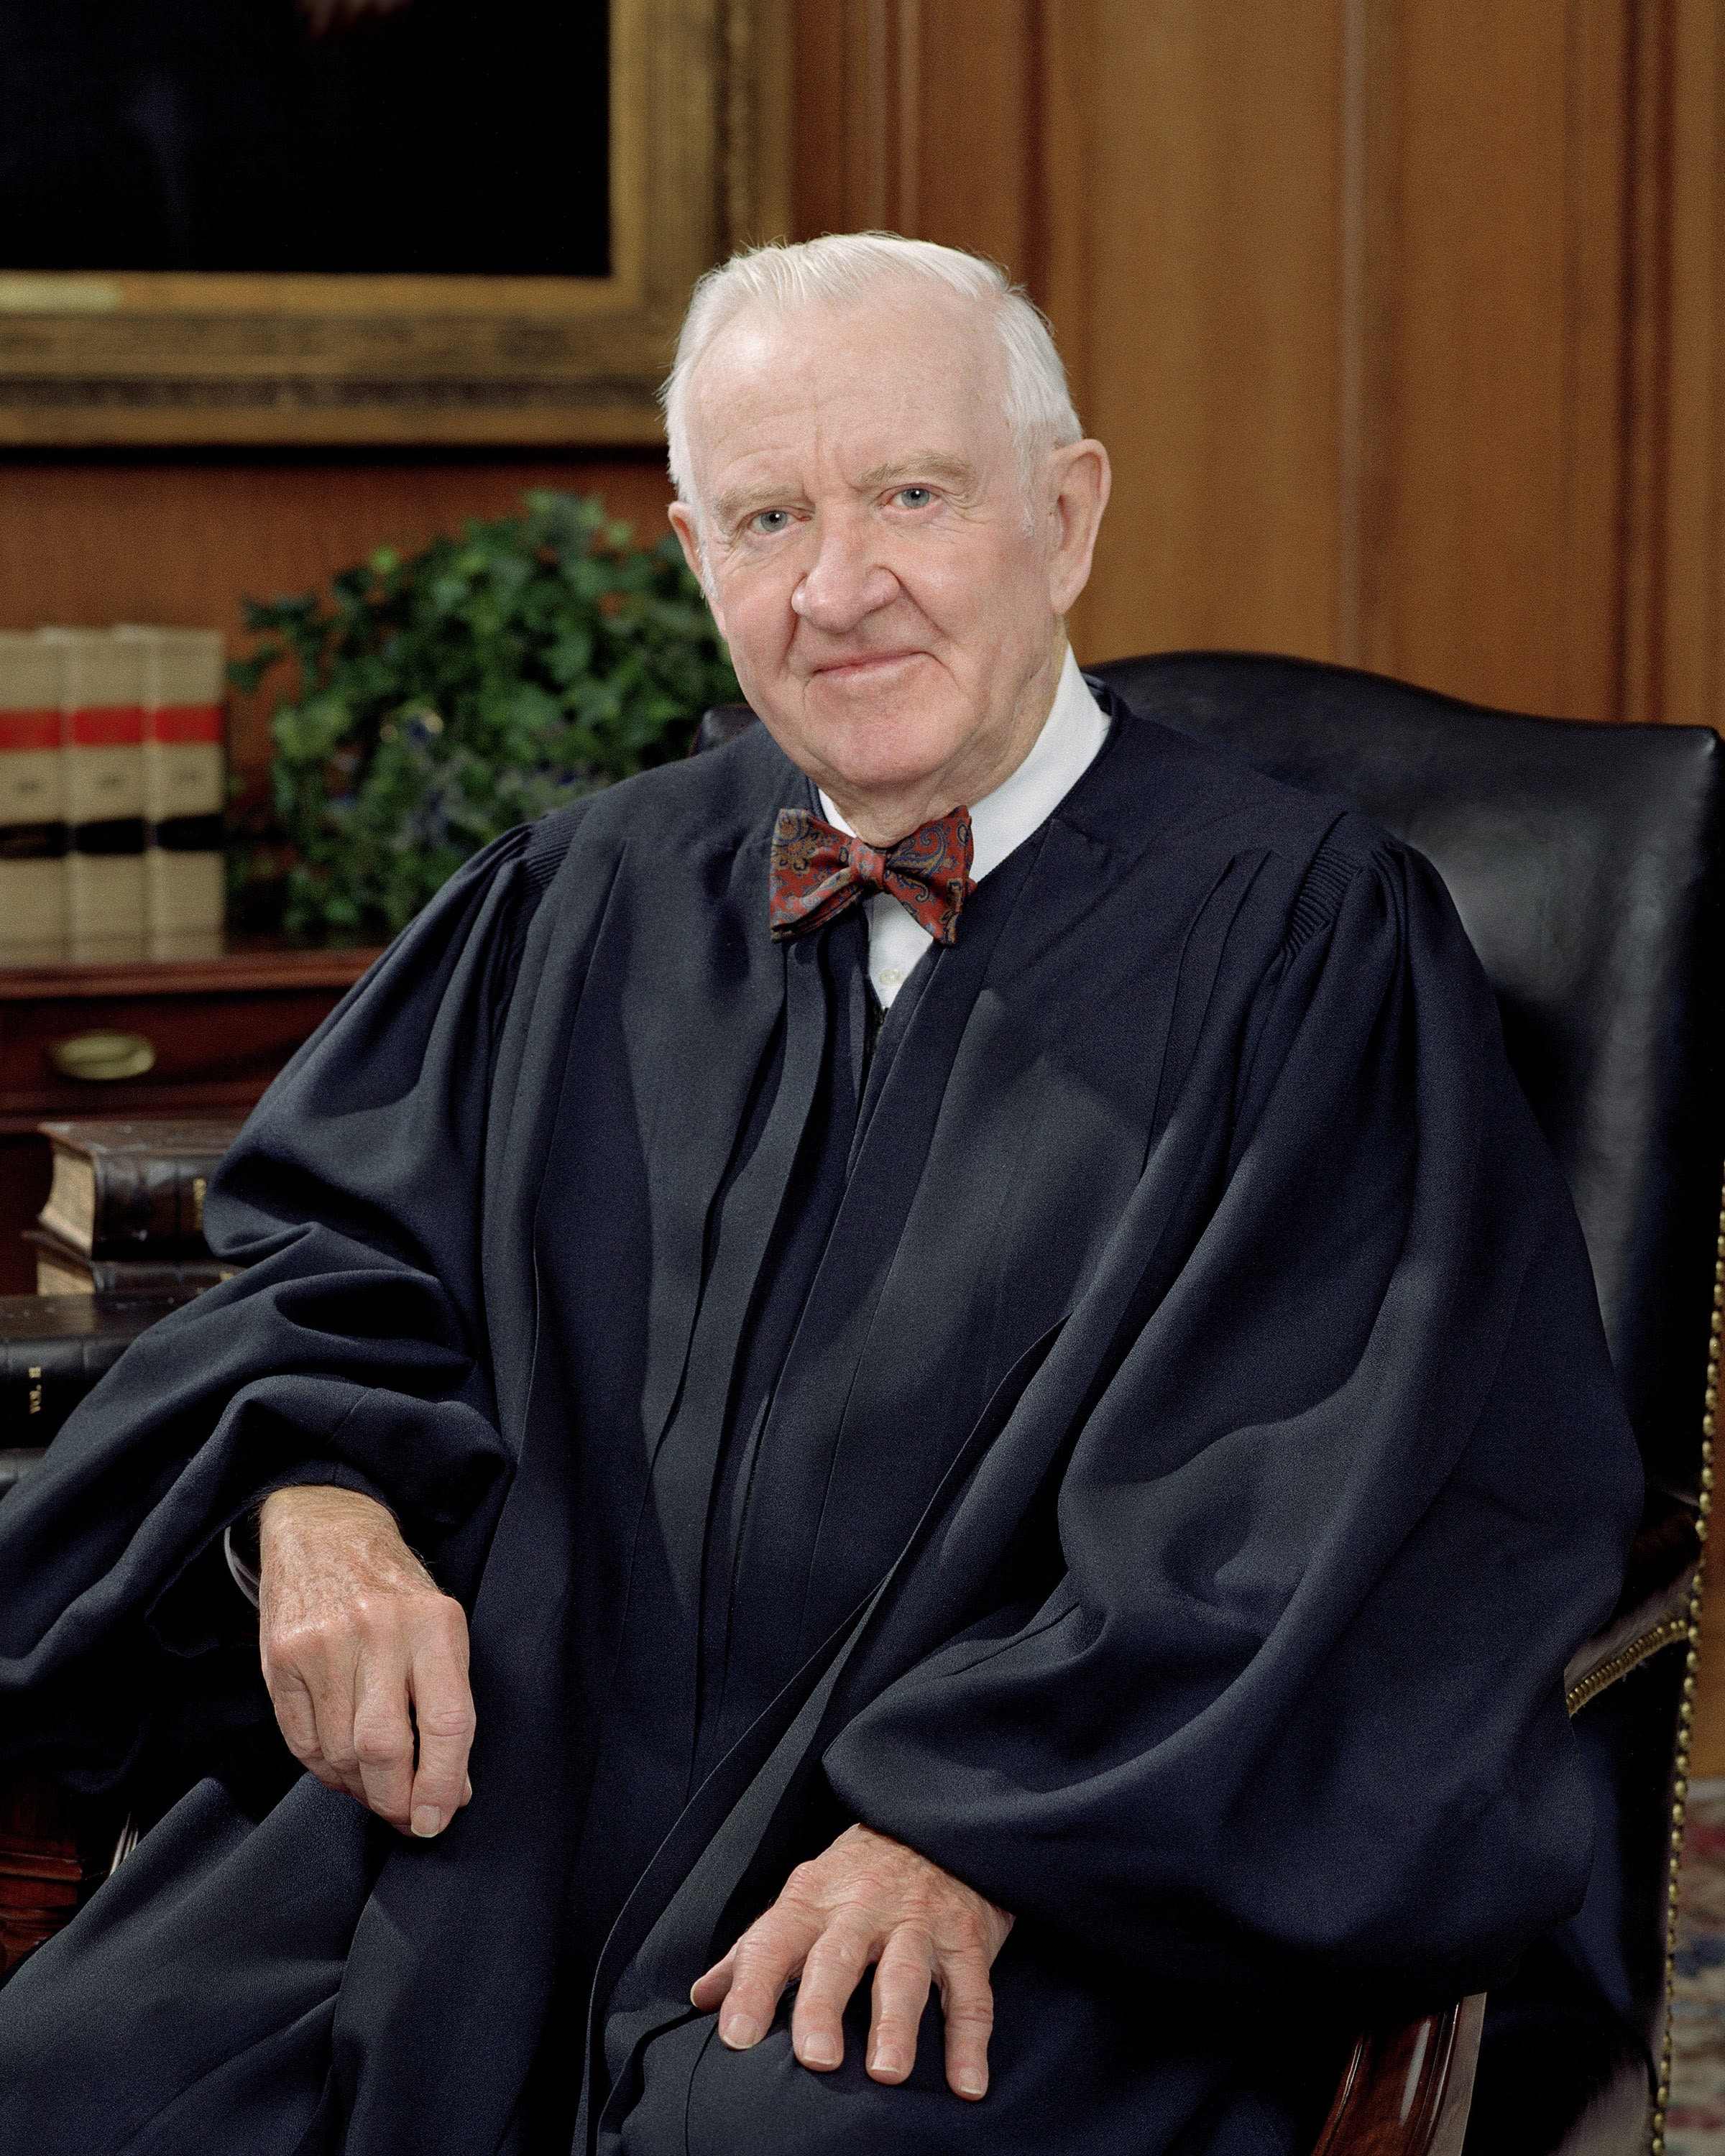 John Paul Stevens, SCOTUS photo portrait